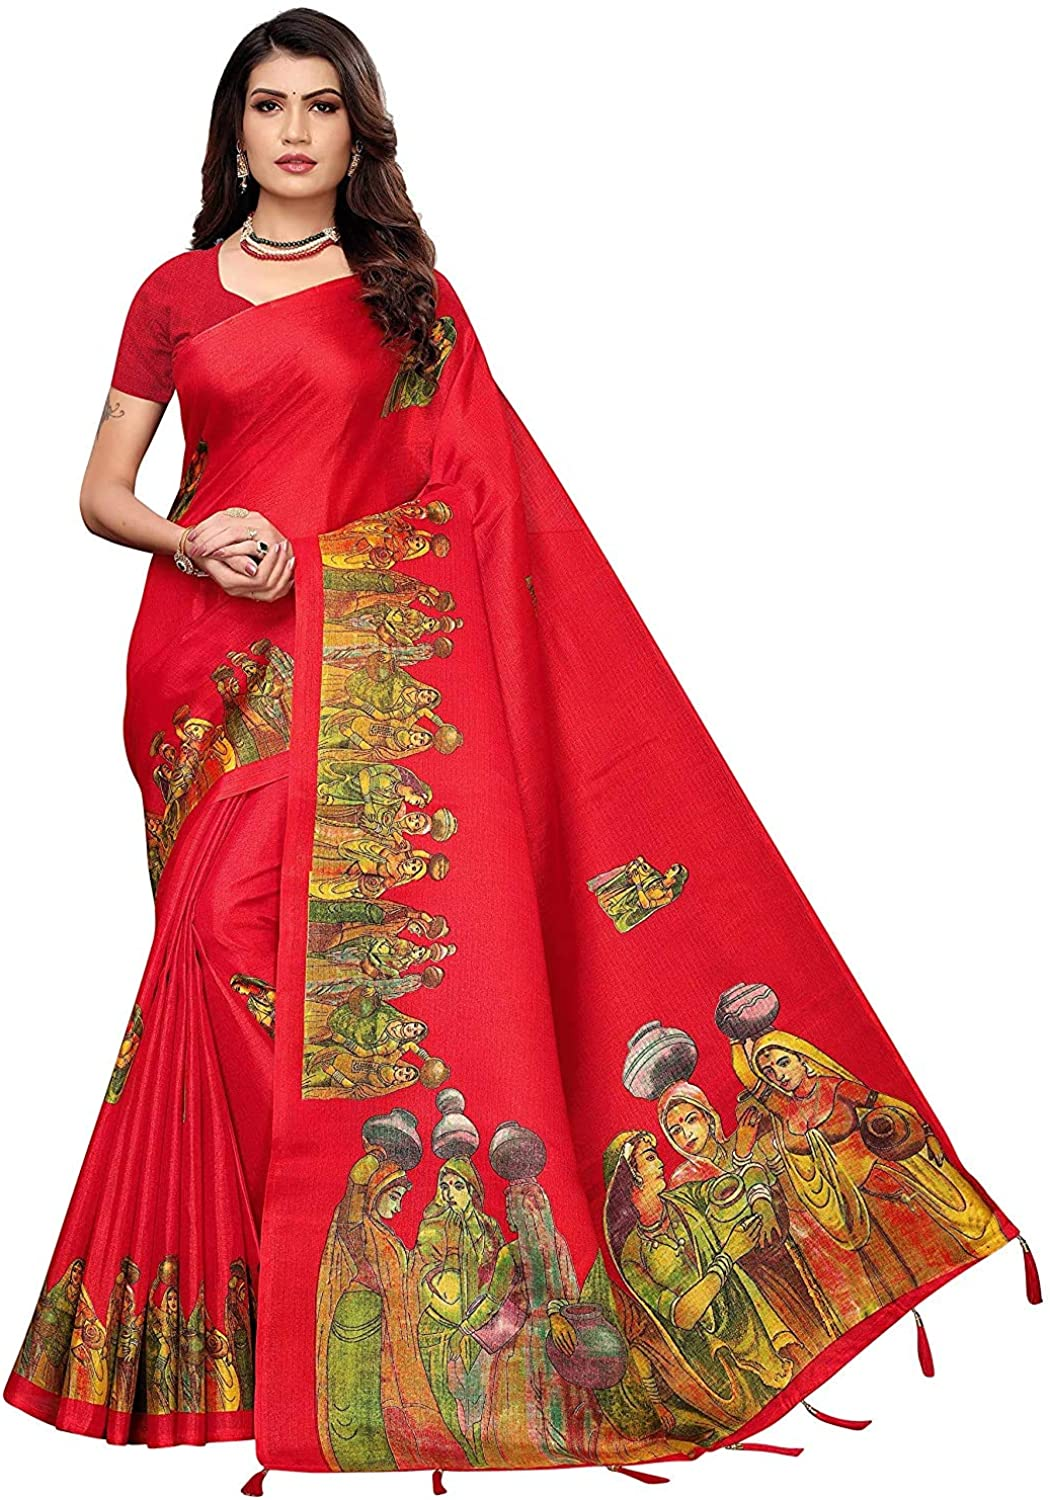 Women's Khadi Silk Printed Traditional Saree with Unstitched Blouse Red